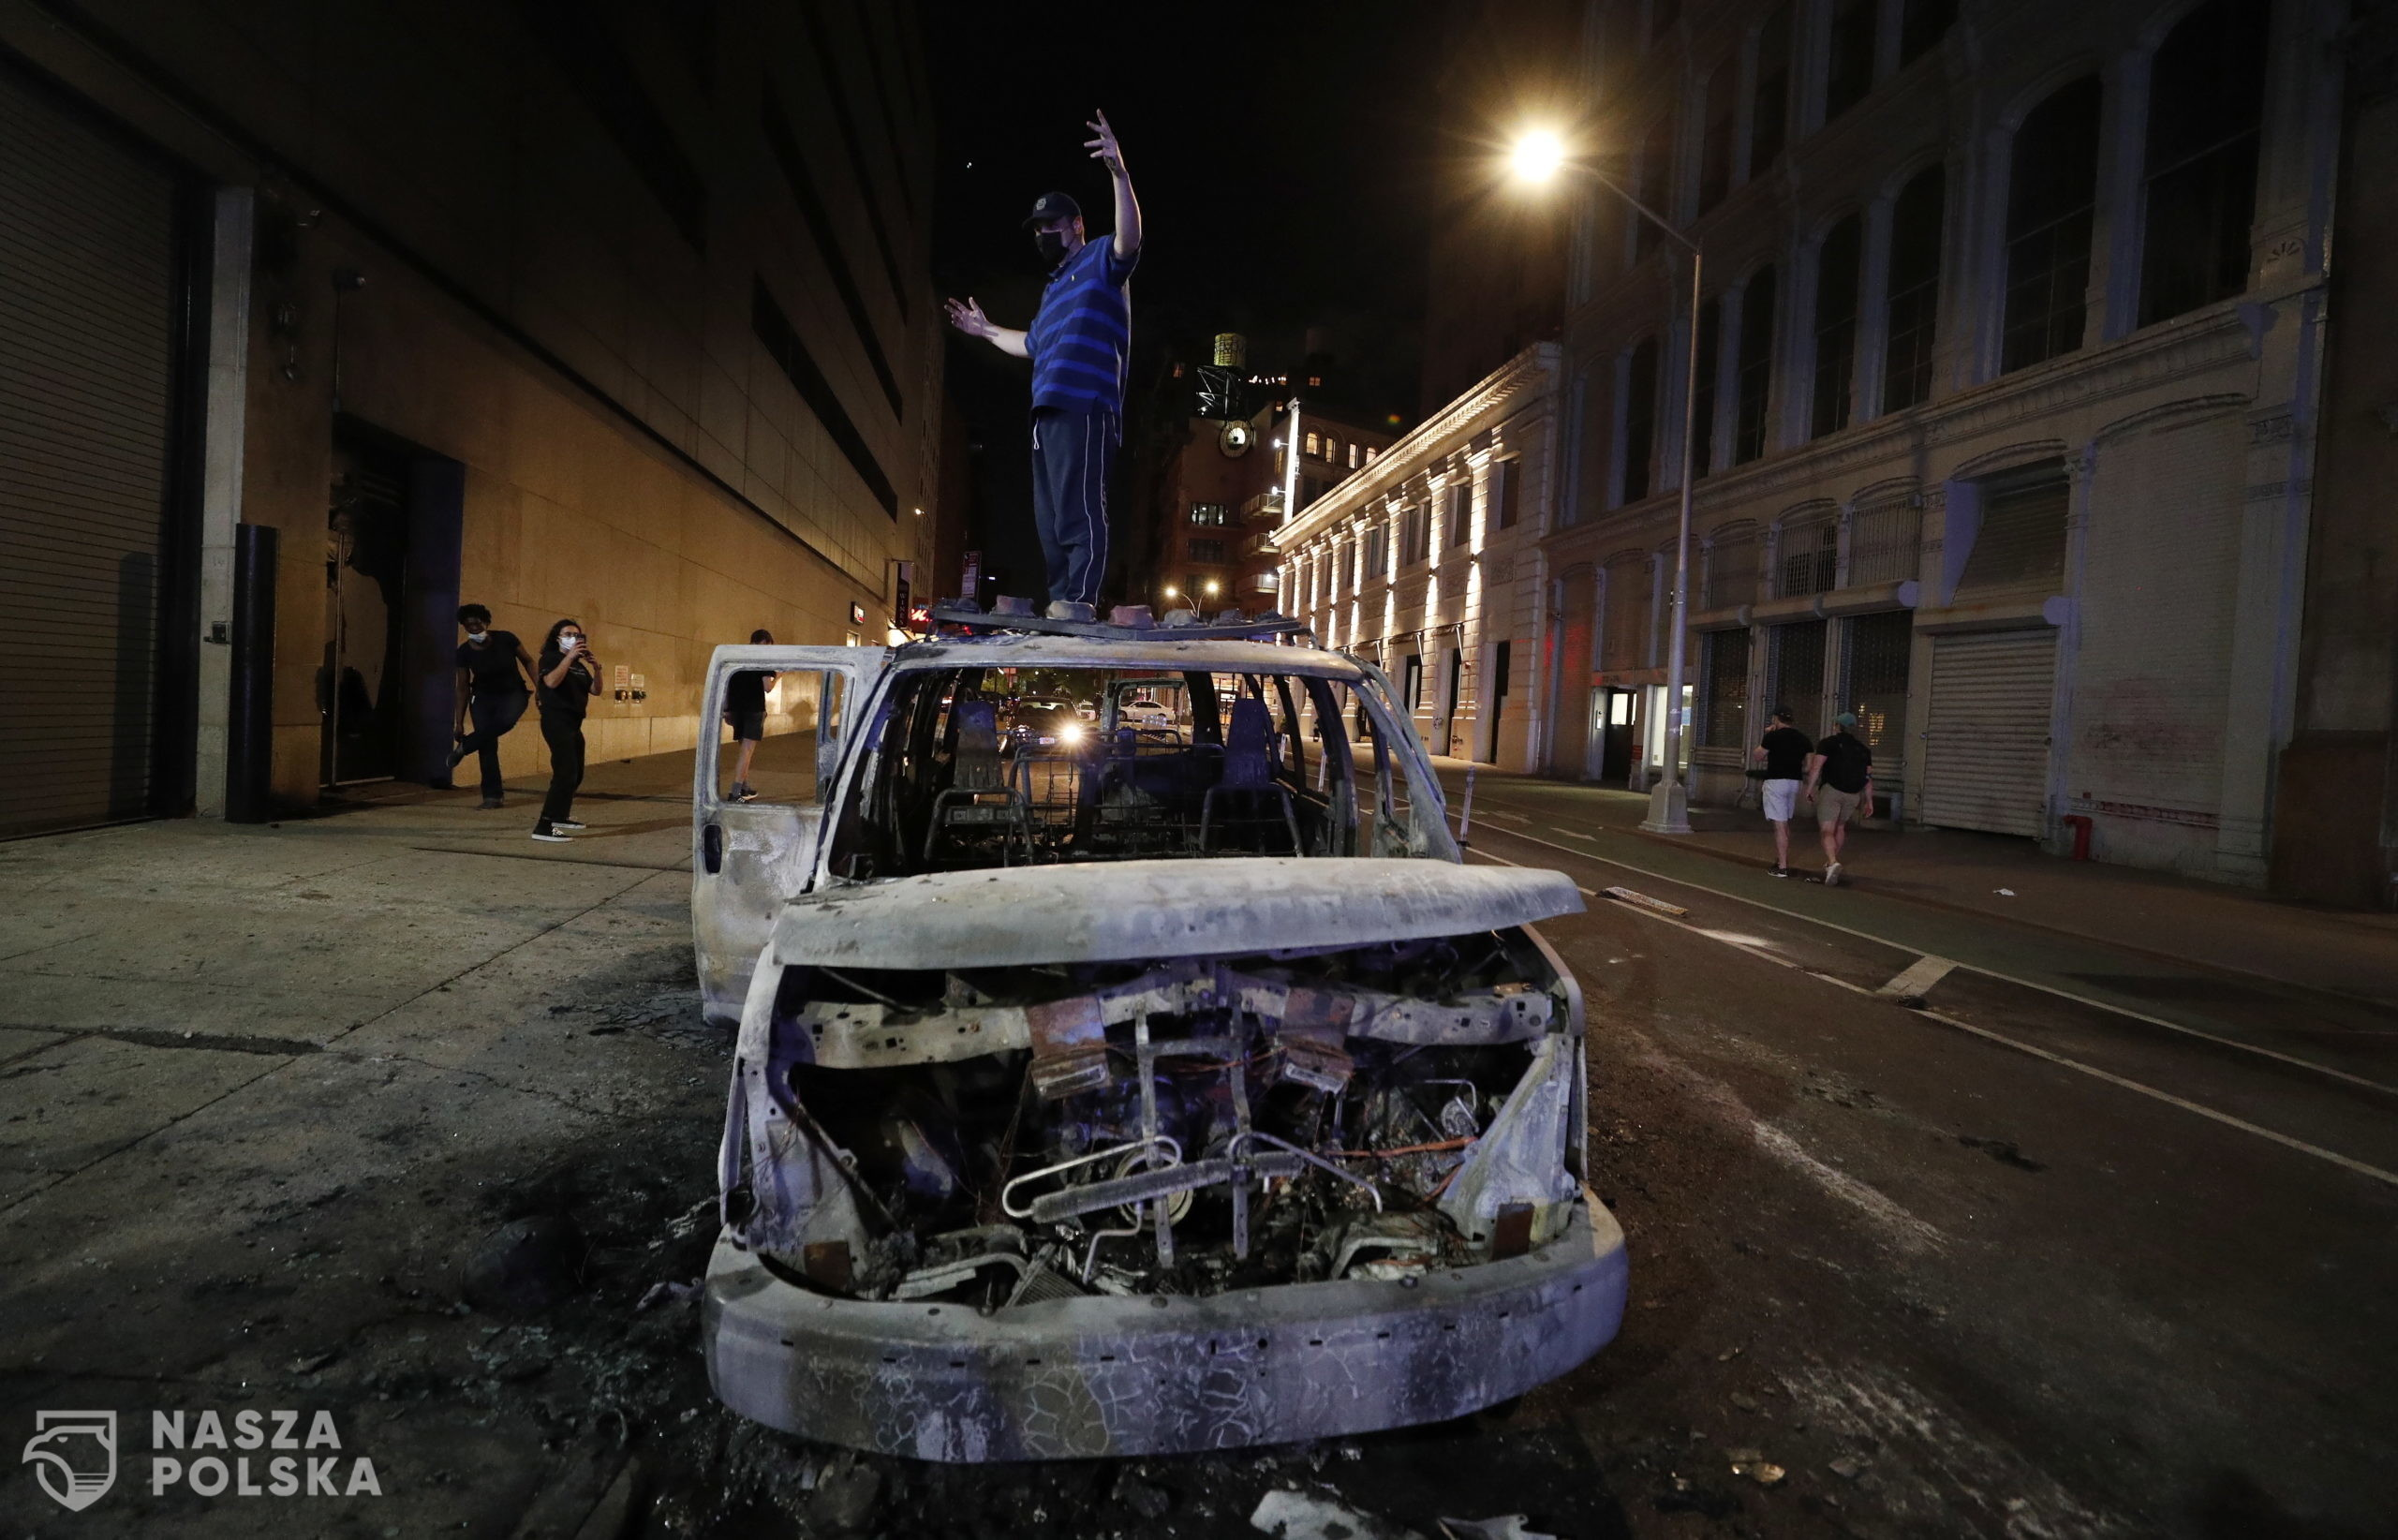 epa08455449 A protester stands on a burned out New York City Police Department vehicle a protesters demostrate about the arrest of George Floyd, who later died in police custody, in New York , New York, USA, 30 May 2020. A bystander's video posted online on 25 May, appeared to show George Floyd, 46, pleading with arresting officers that he couldn't breathe as an officer knelt on his neck. The unarmed black man later died in police custody.  EPA/JUSTIN LANE  Dostawca: PAP/EPA.